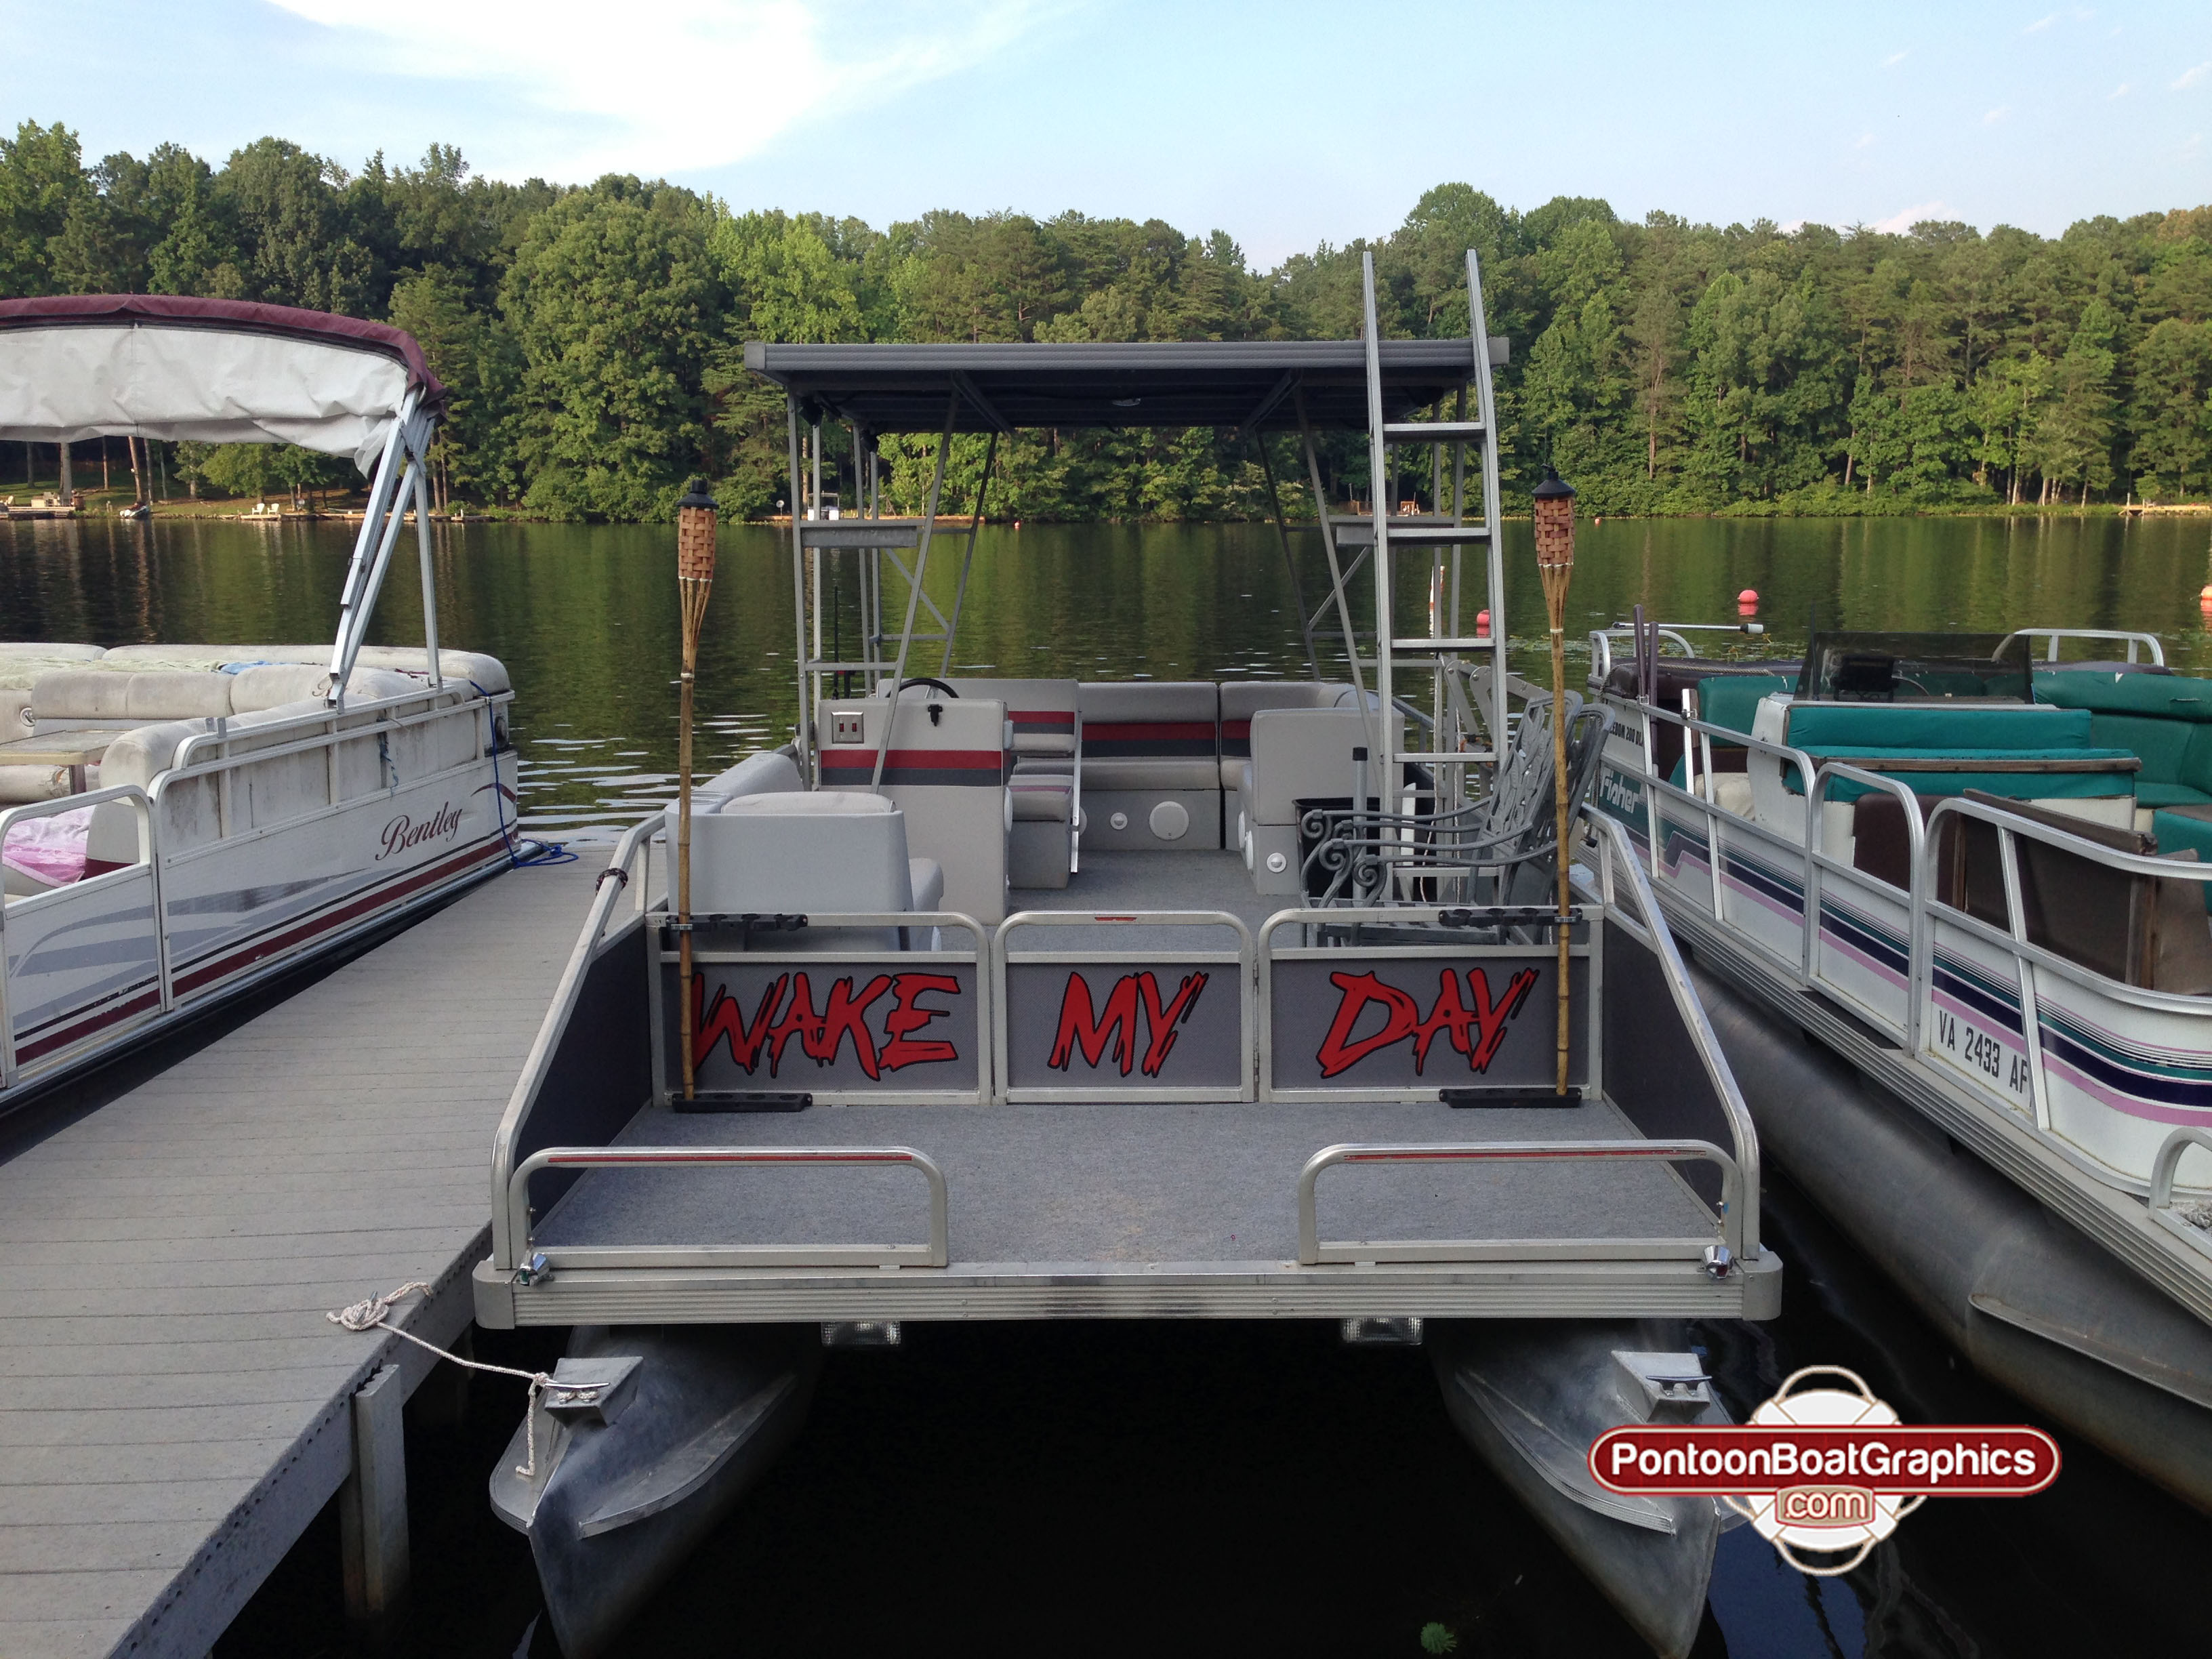 Pontoon Boat Names Boat Graphics Decals Pontoonboatgraphics - Decals for pontoon boats